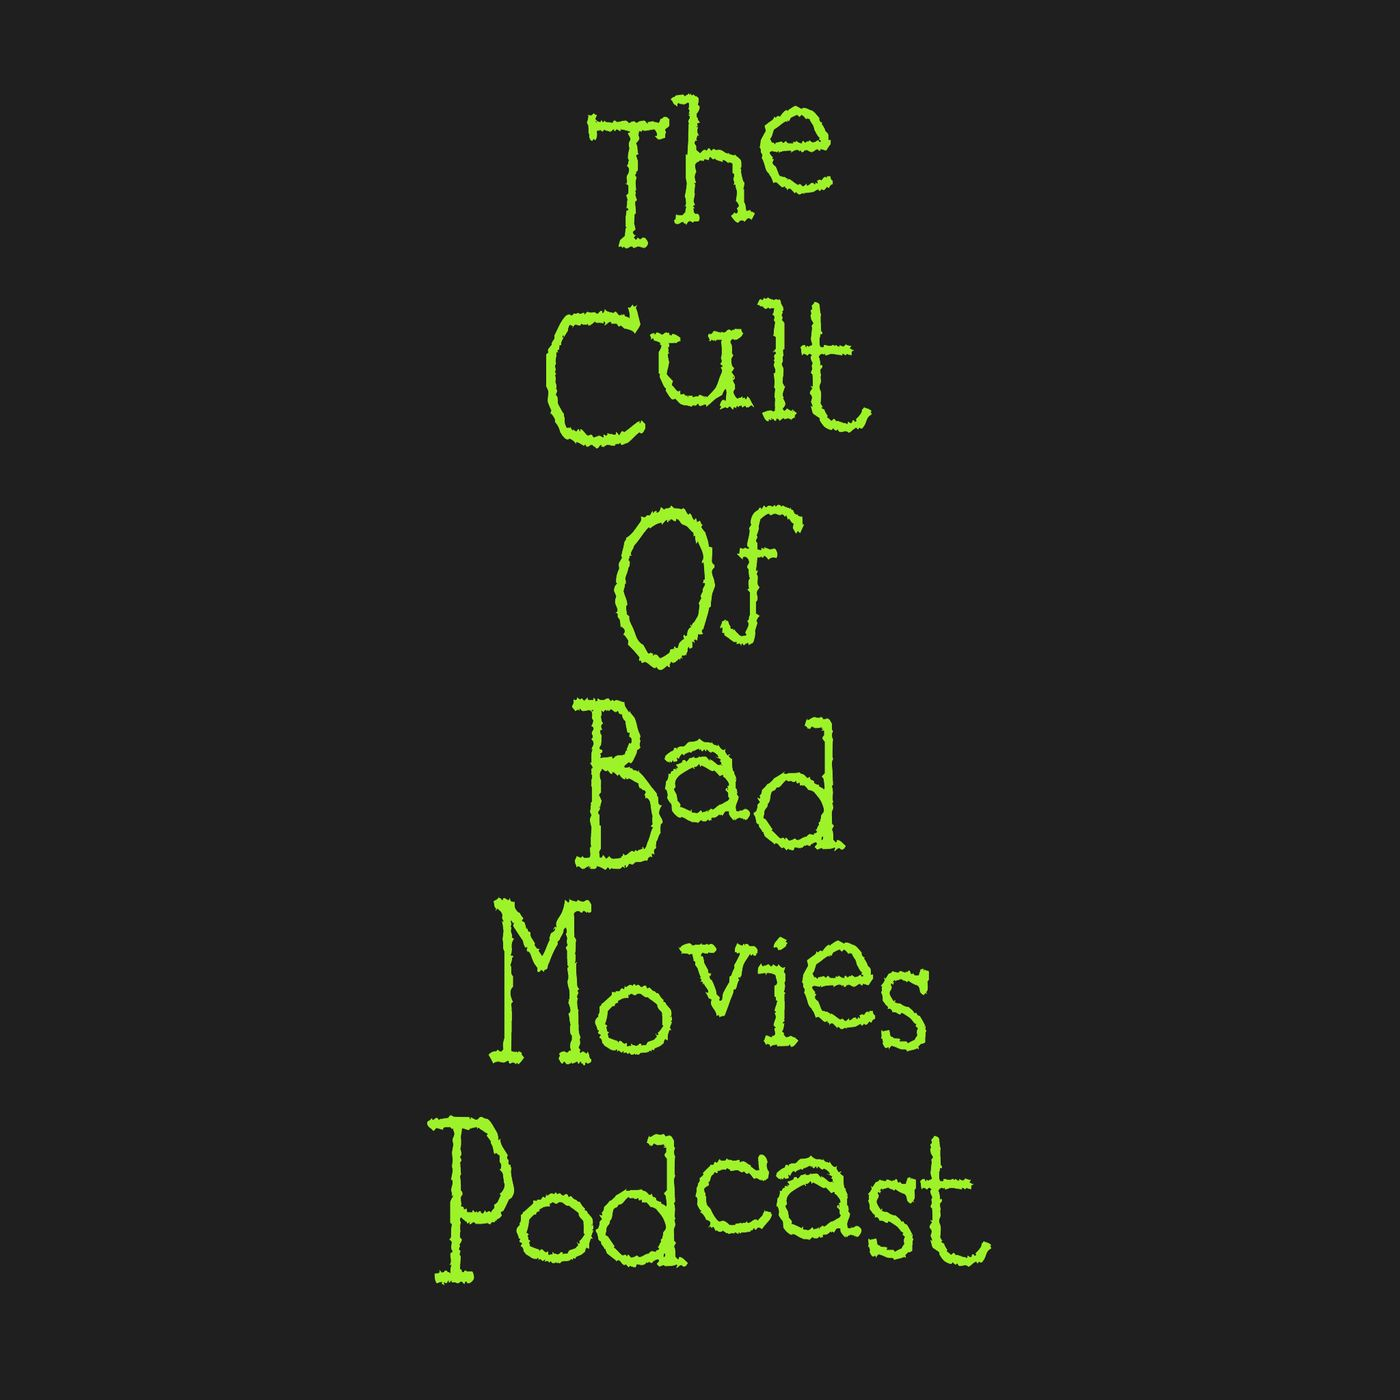 The Cult of Bad Movies Podcast